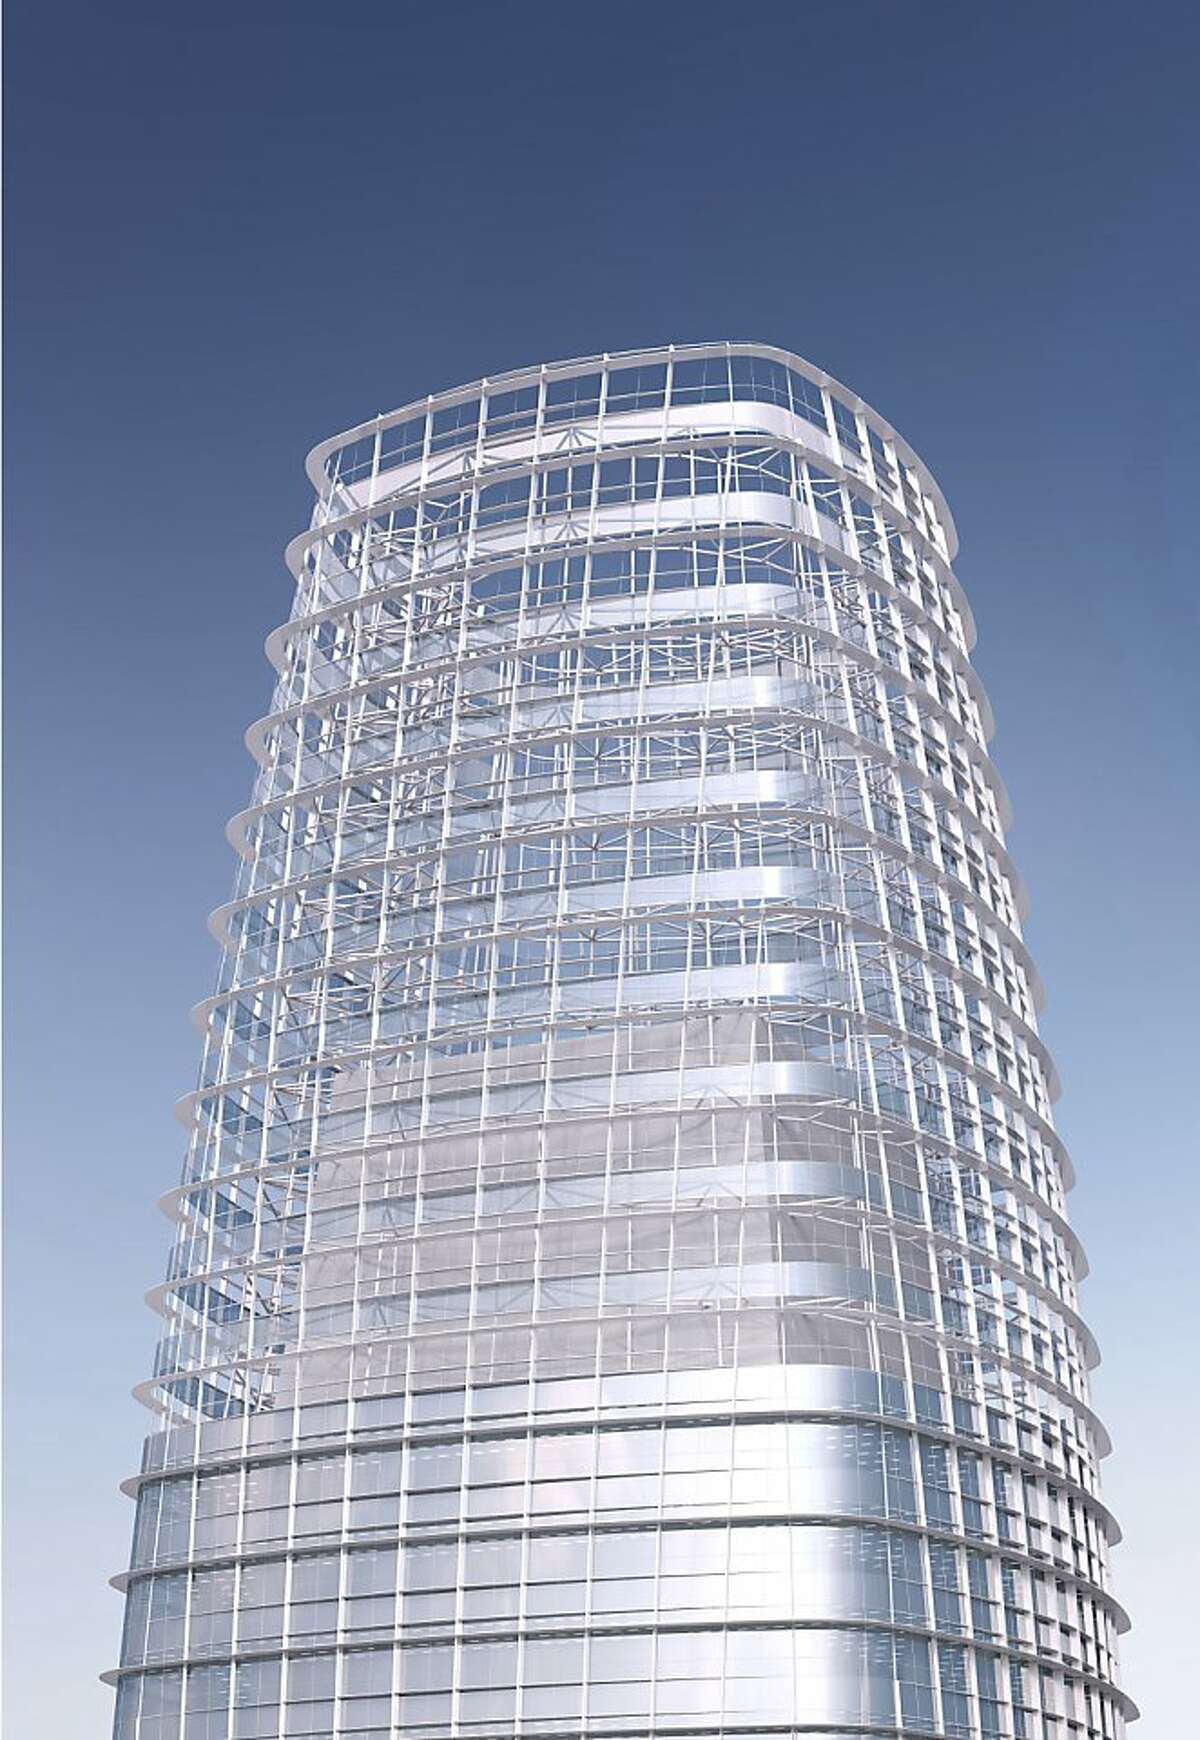 The proposed Transbay Tower culminates in a 150-foot